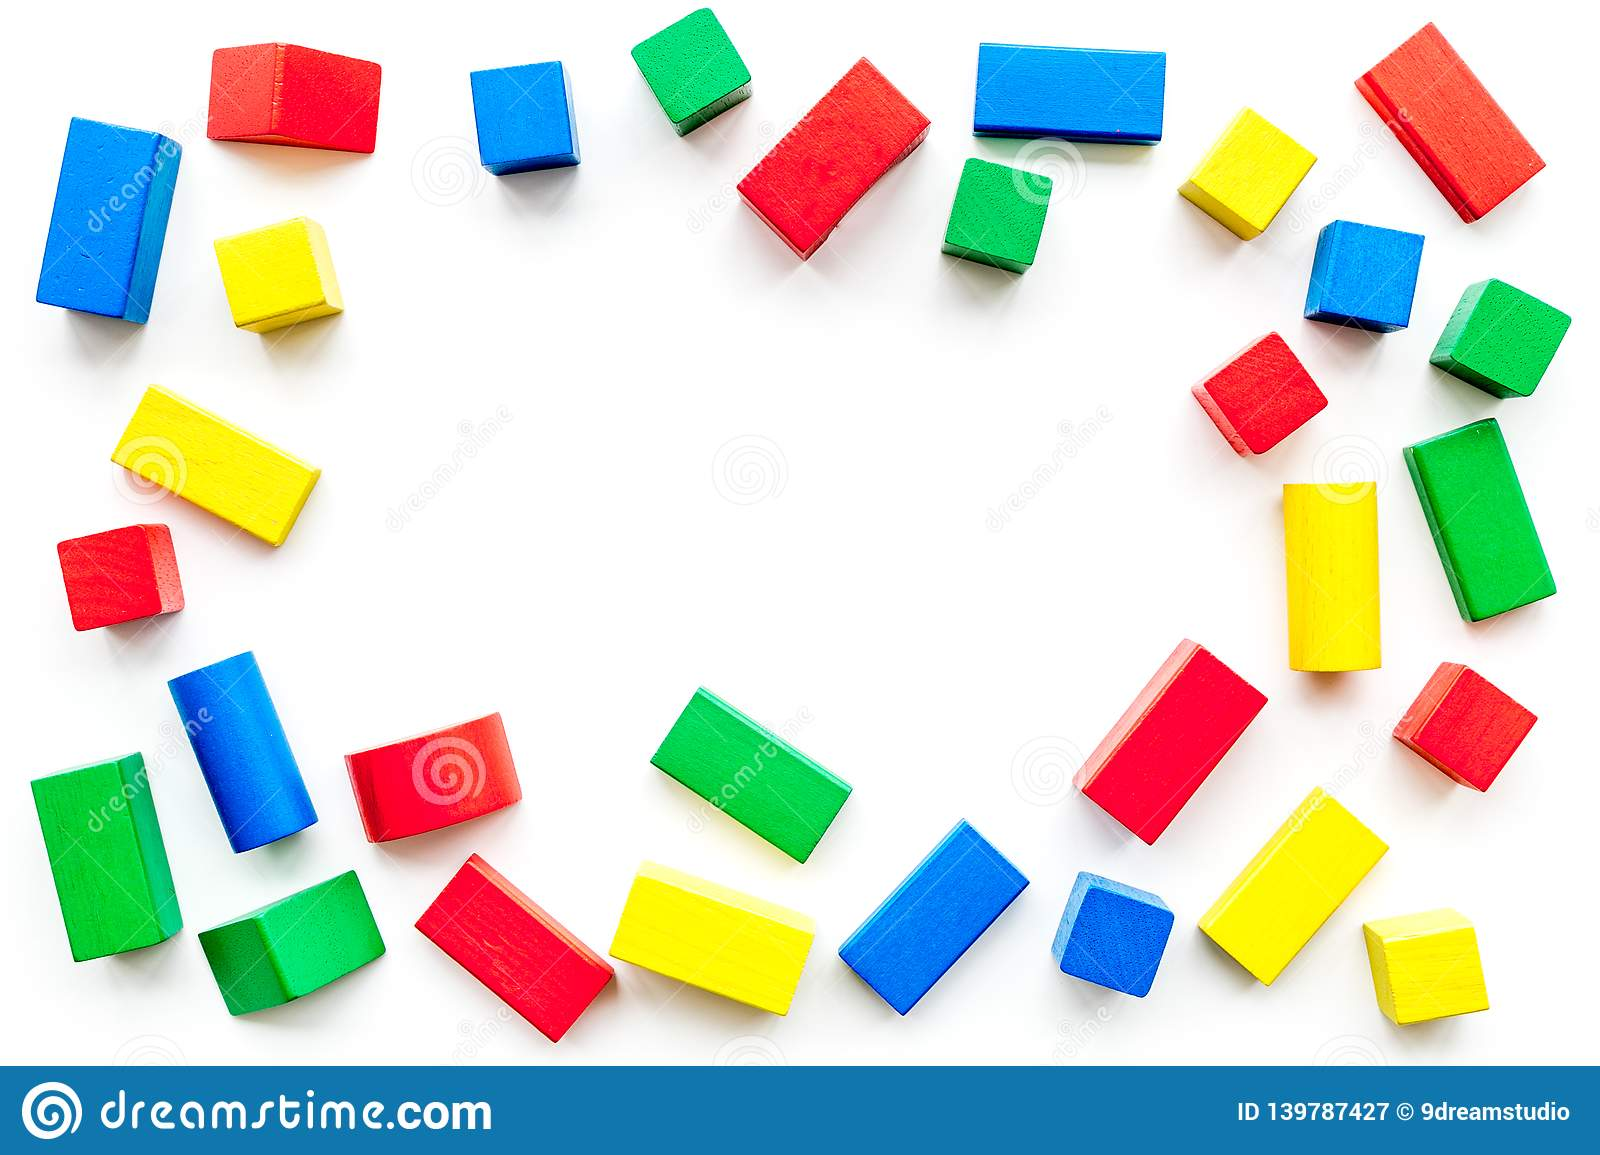 Construction game for kids. Wooden building blocks, toy bricks on white background top view copy space frame